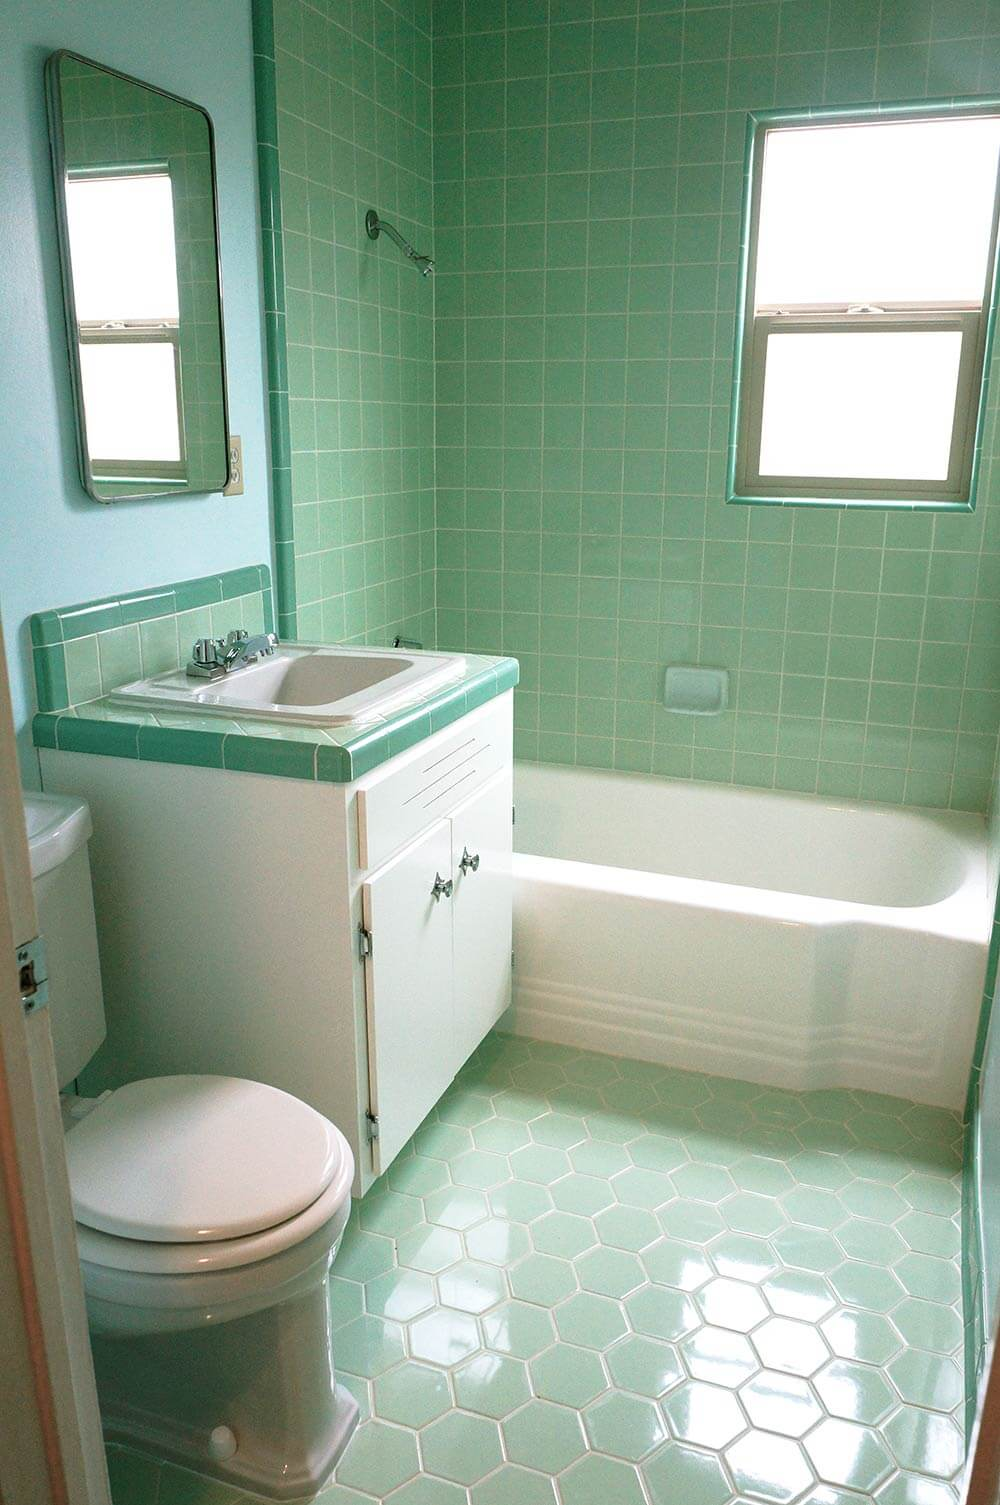 The color green in kitchen and bathroom sinks tubs and for Kitchen and bathroom